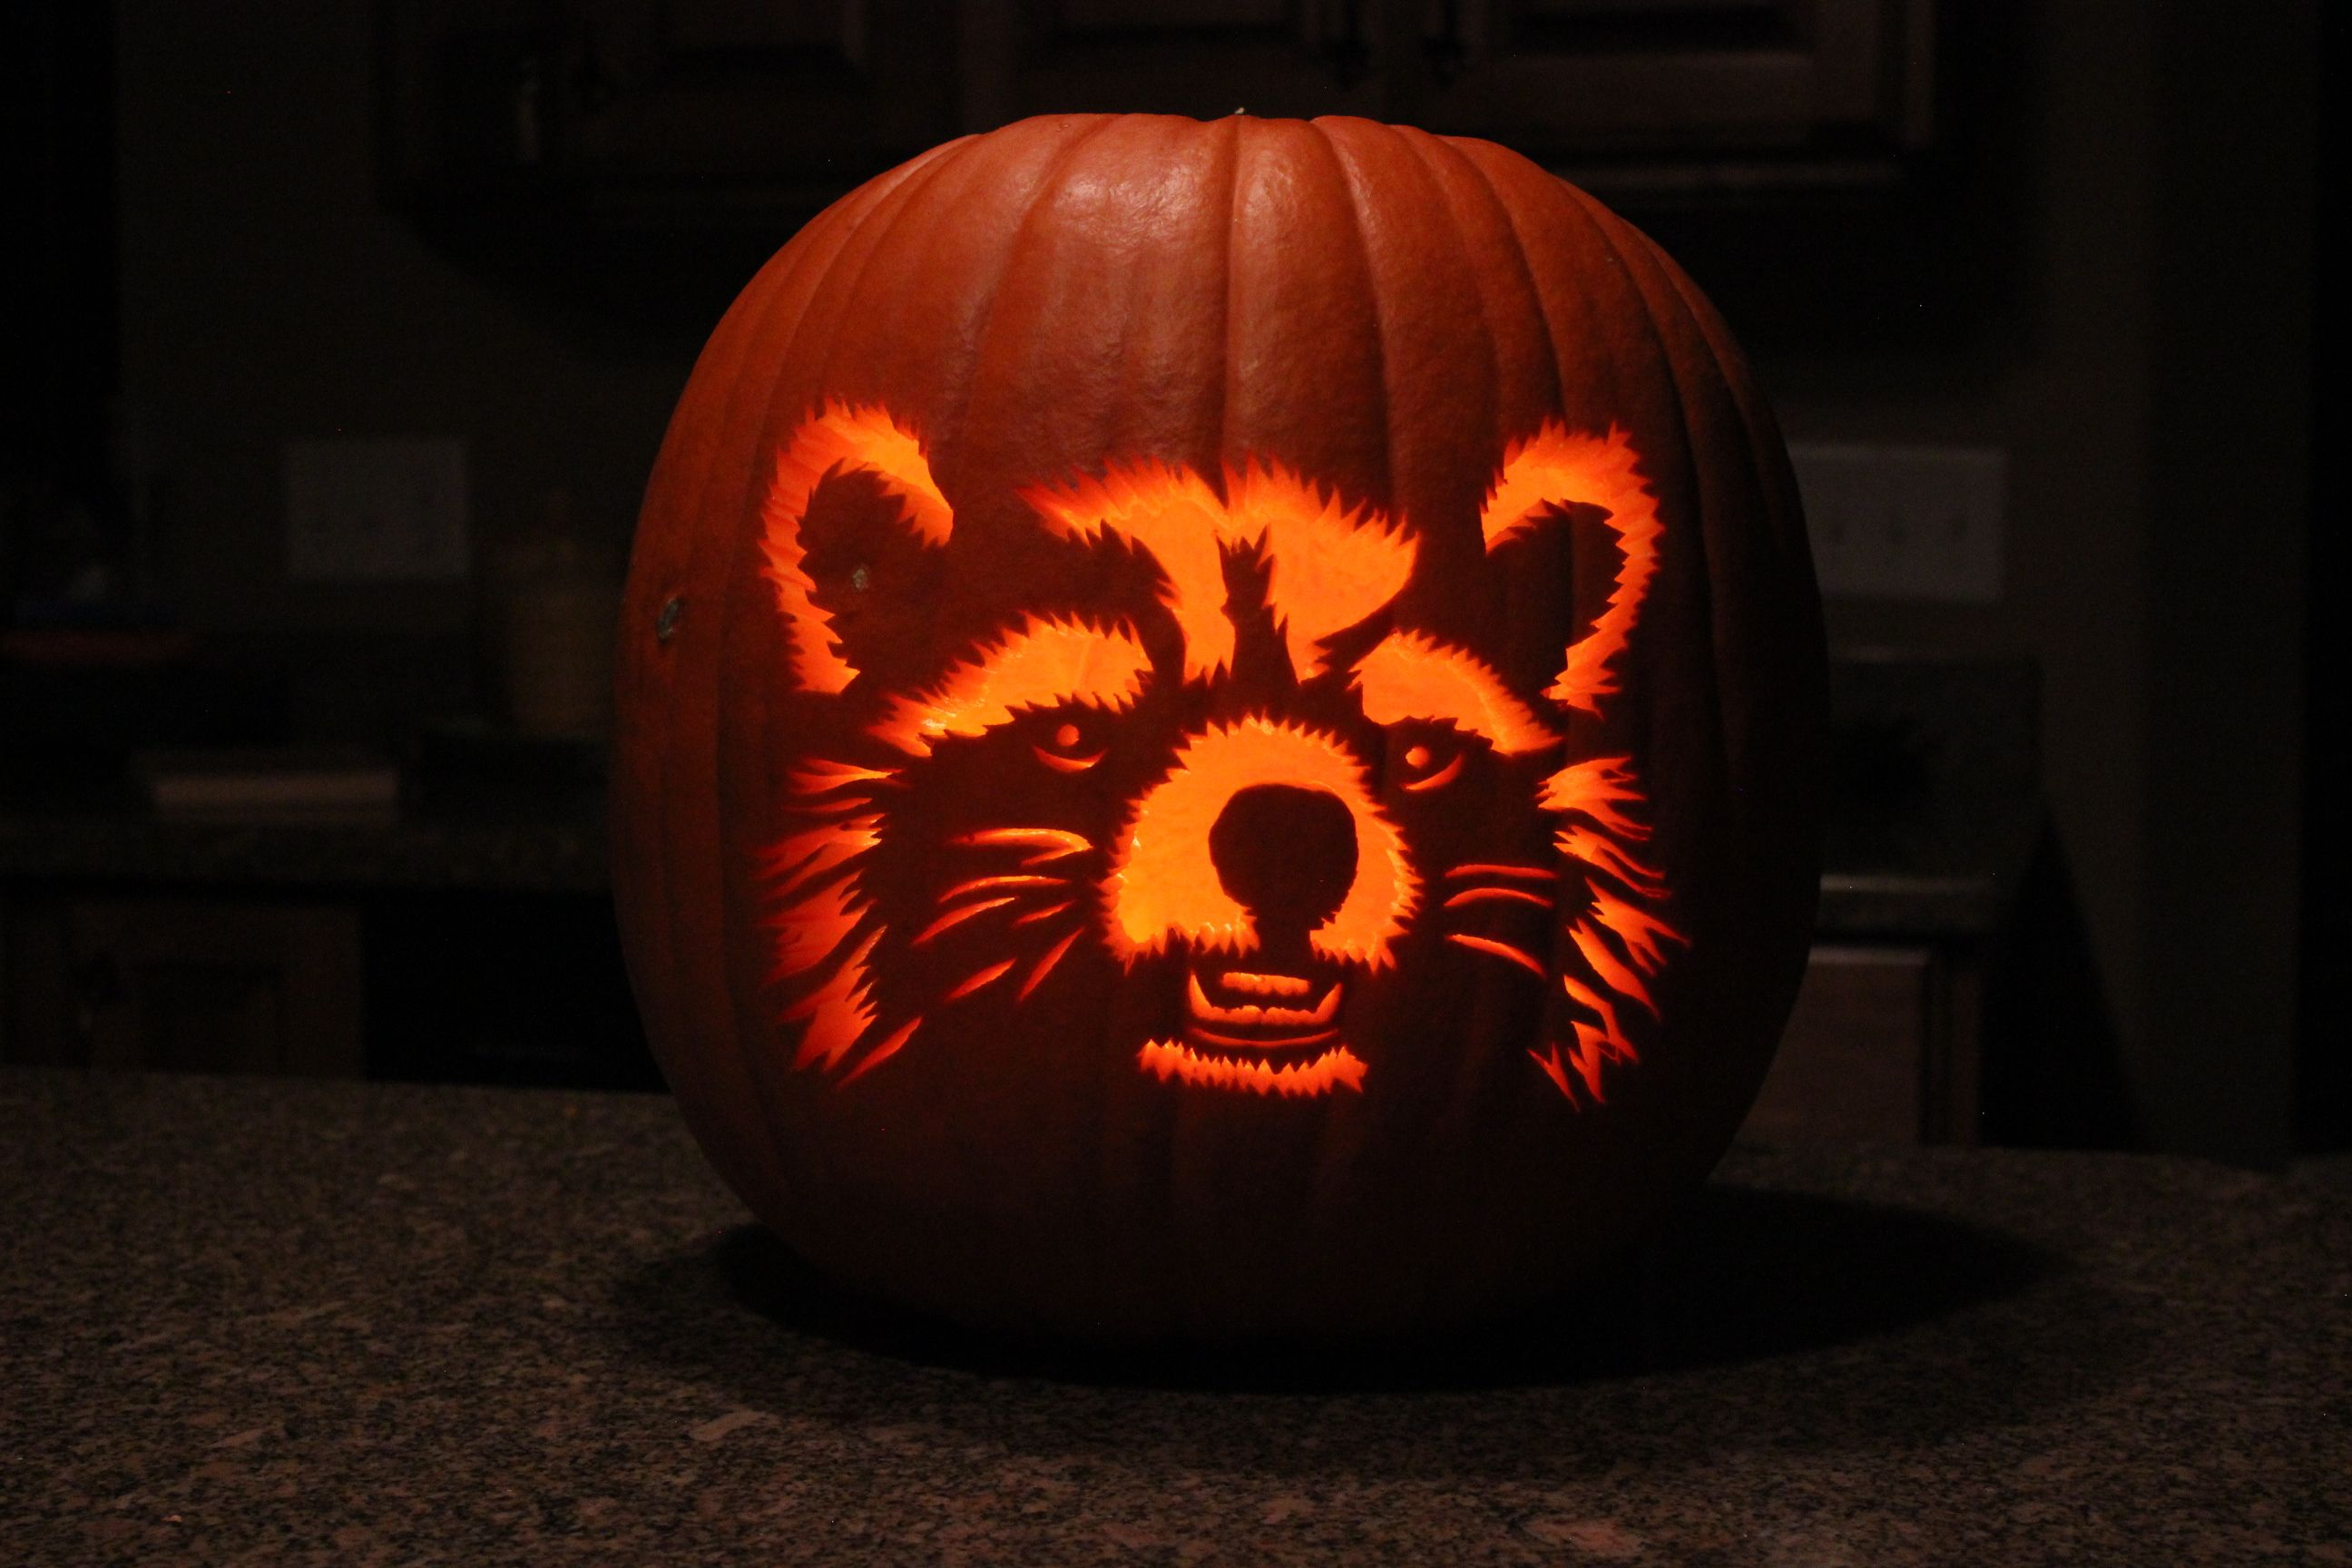 Rocket from Guardians of the Galaxy | Pumpkin carving designs